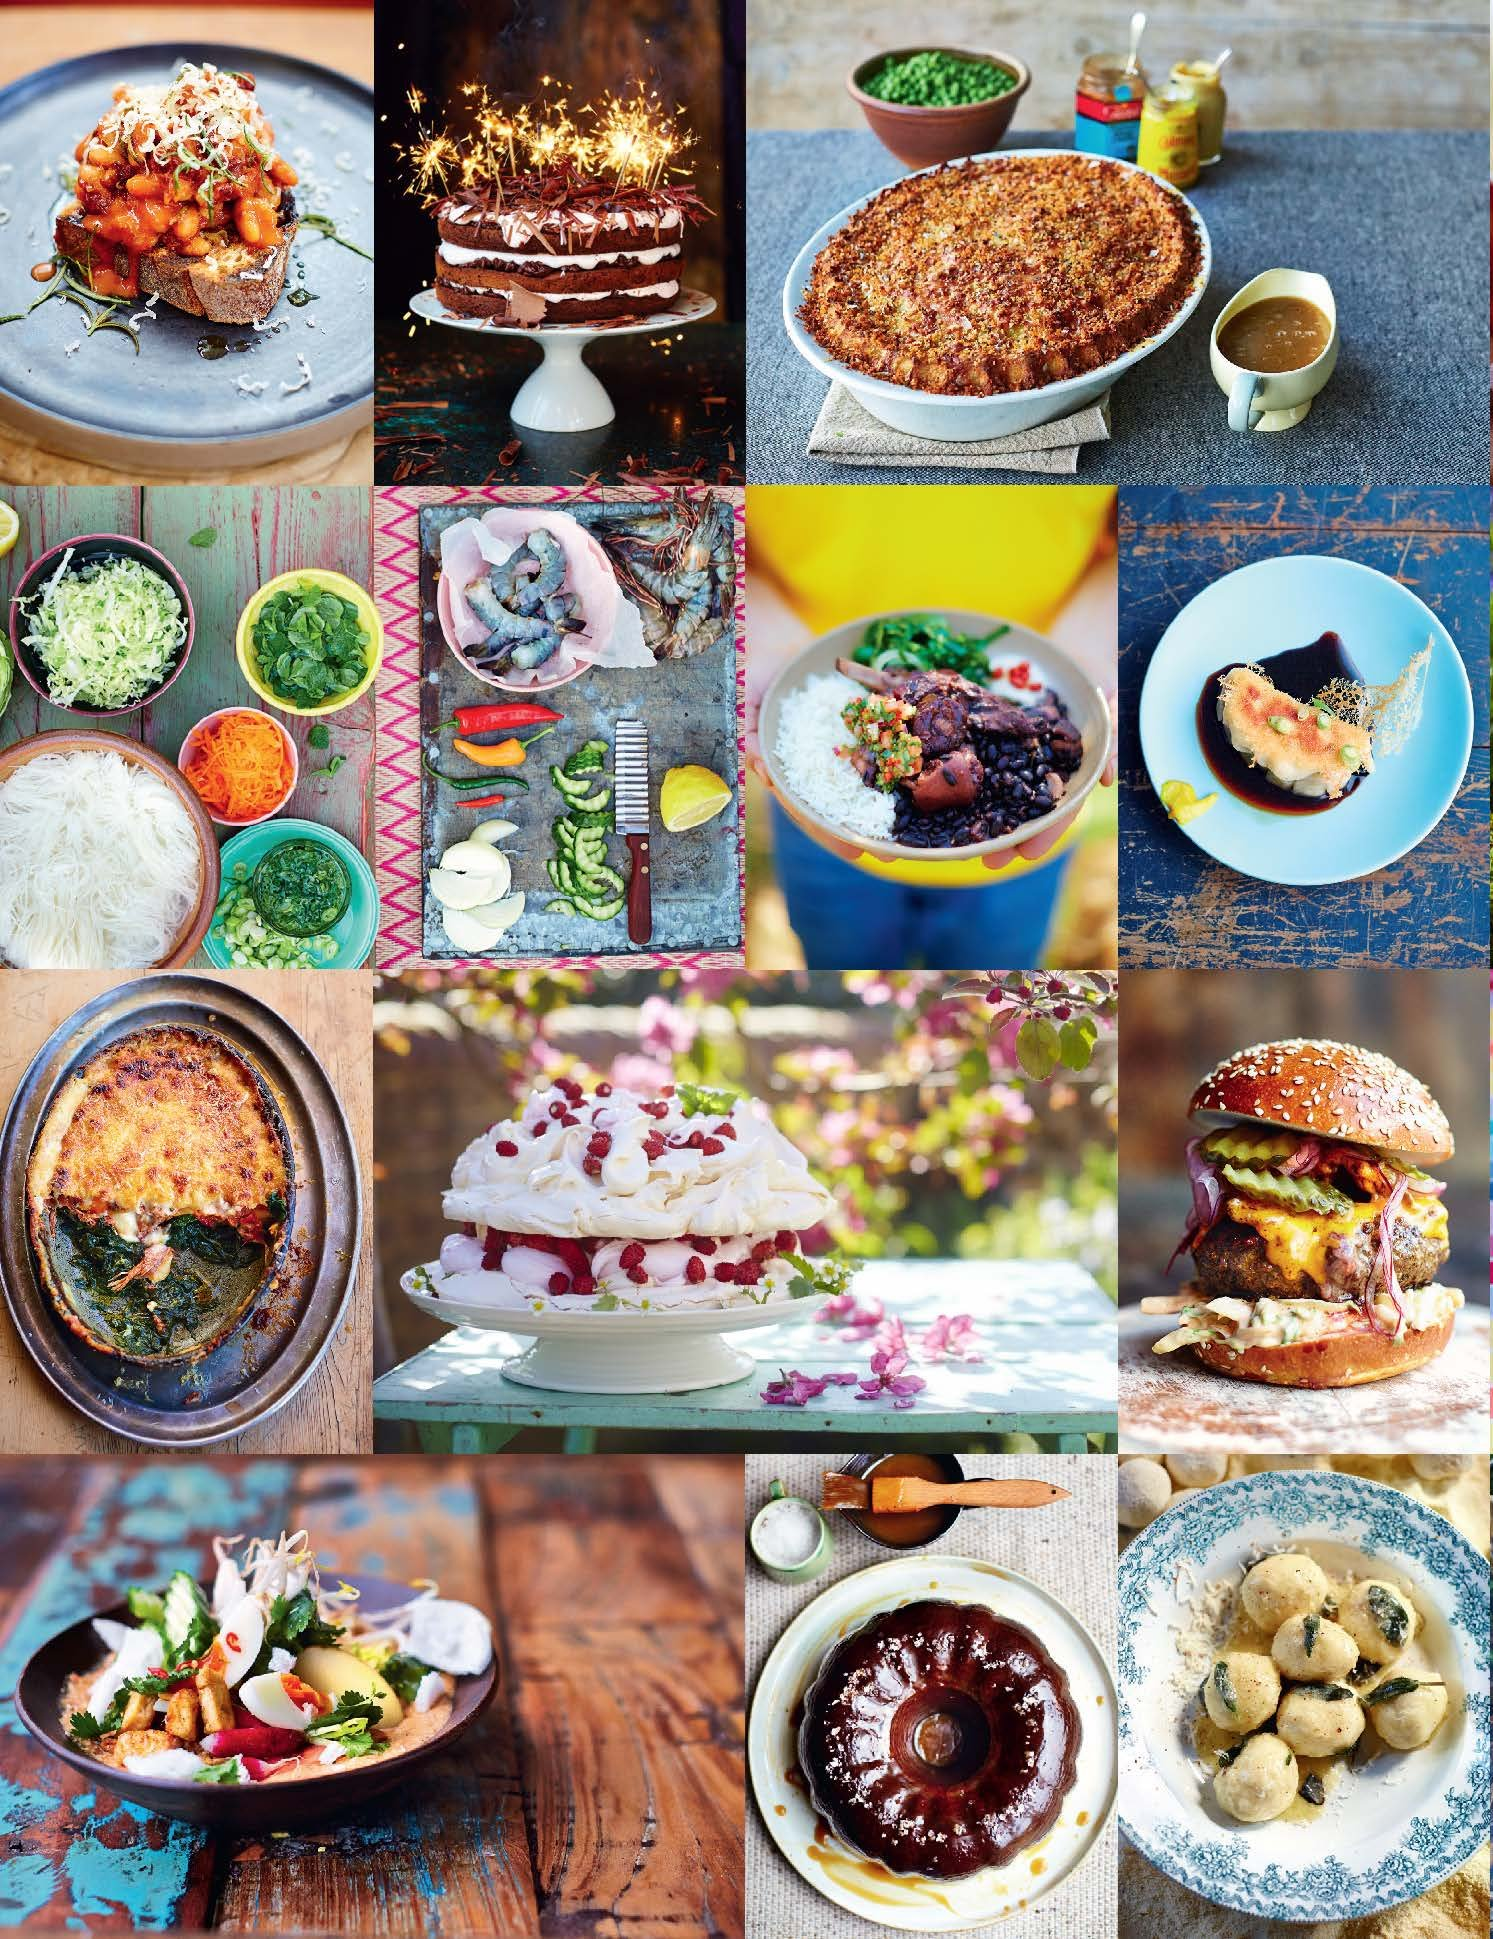 Jamies comfort food amazon jamie oliver 9780718159535 books forumfinder Image collections